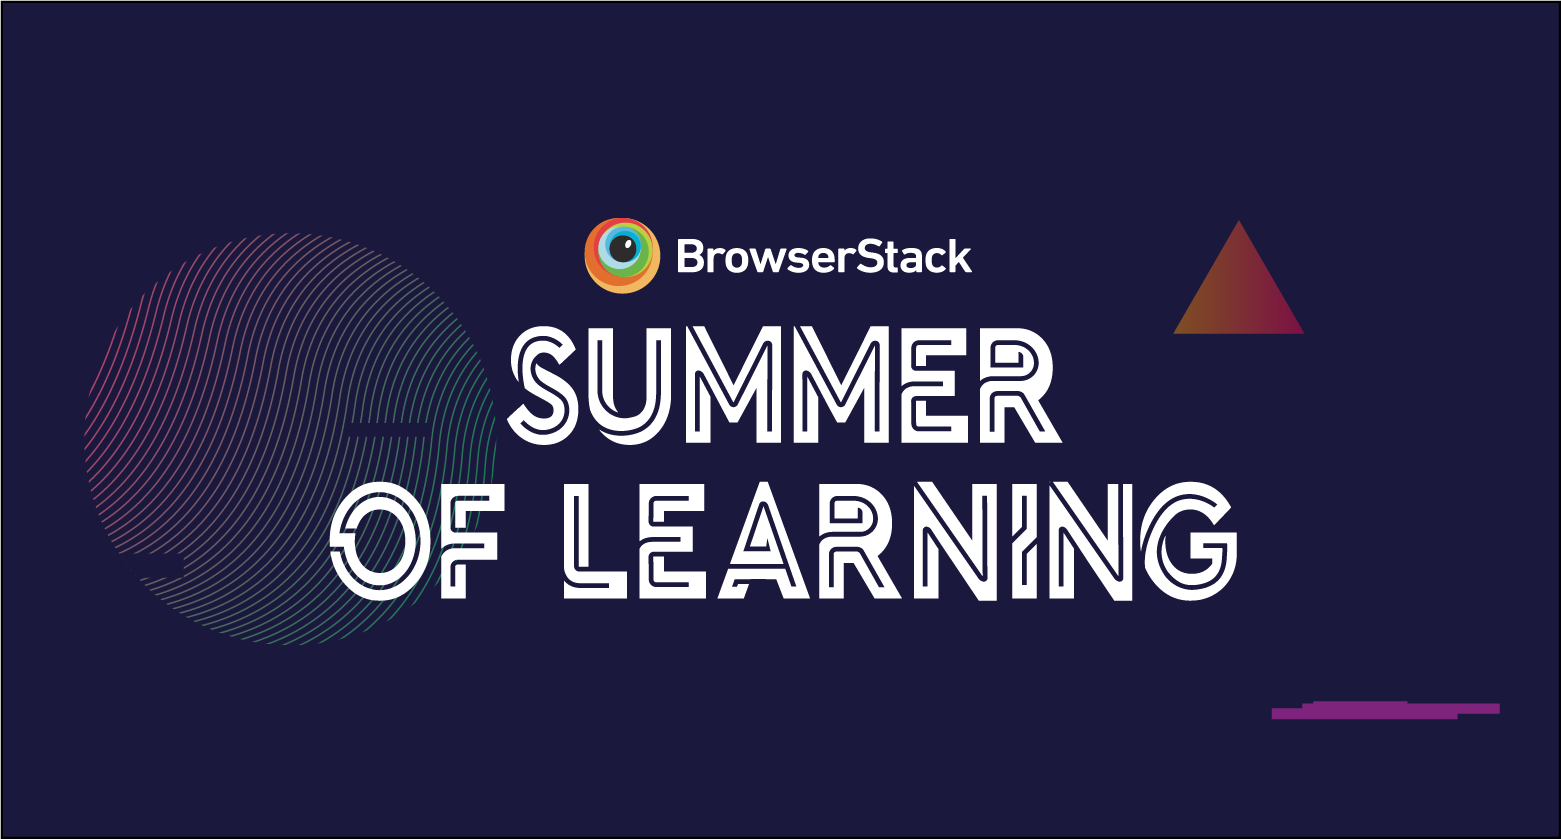 BrowserStack-summer-of-learning-banner@2x-2